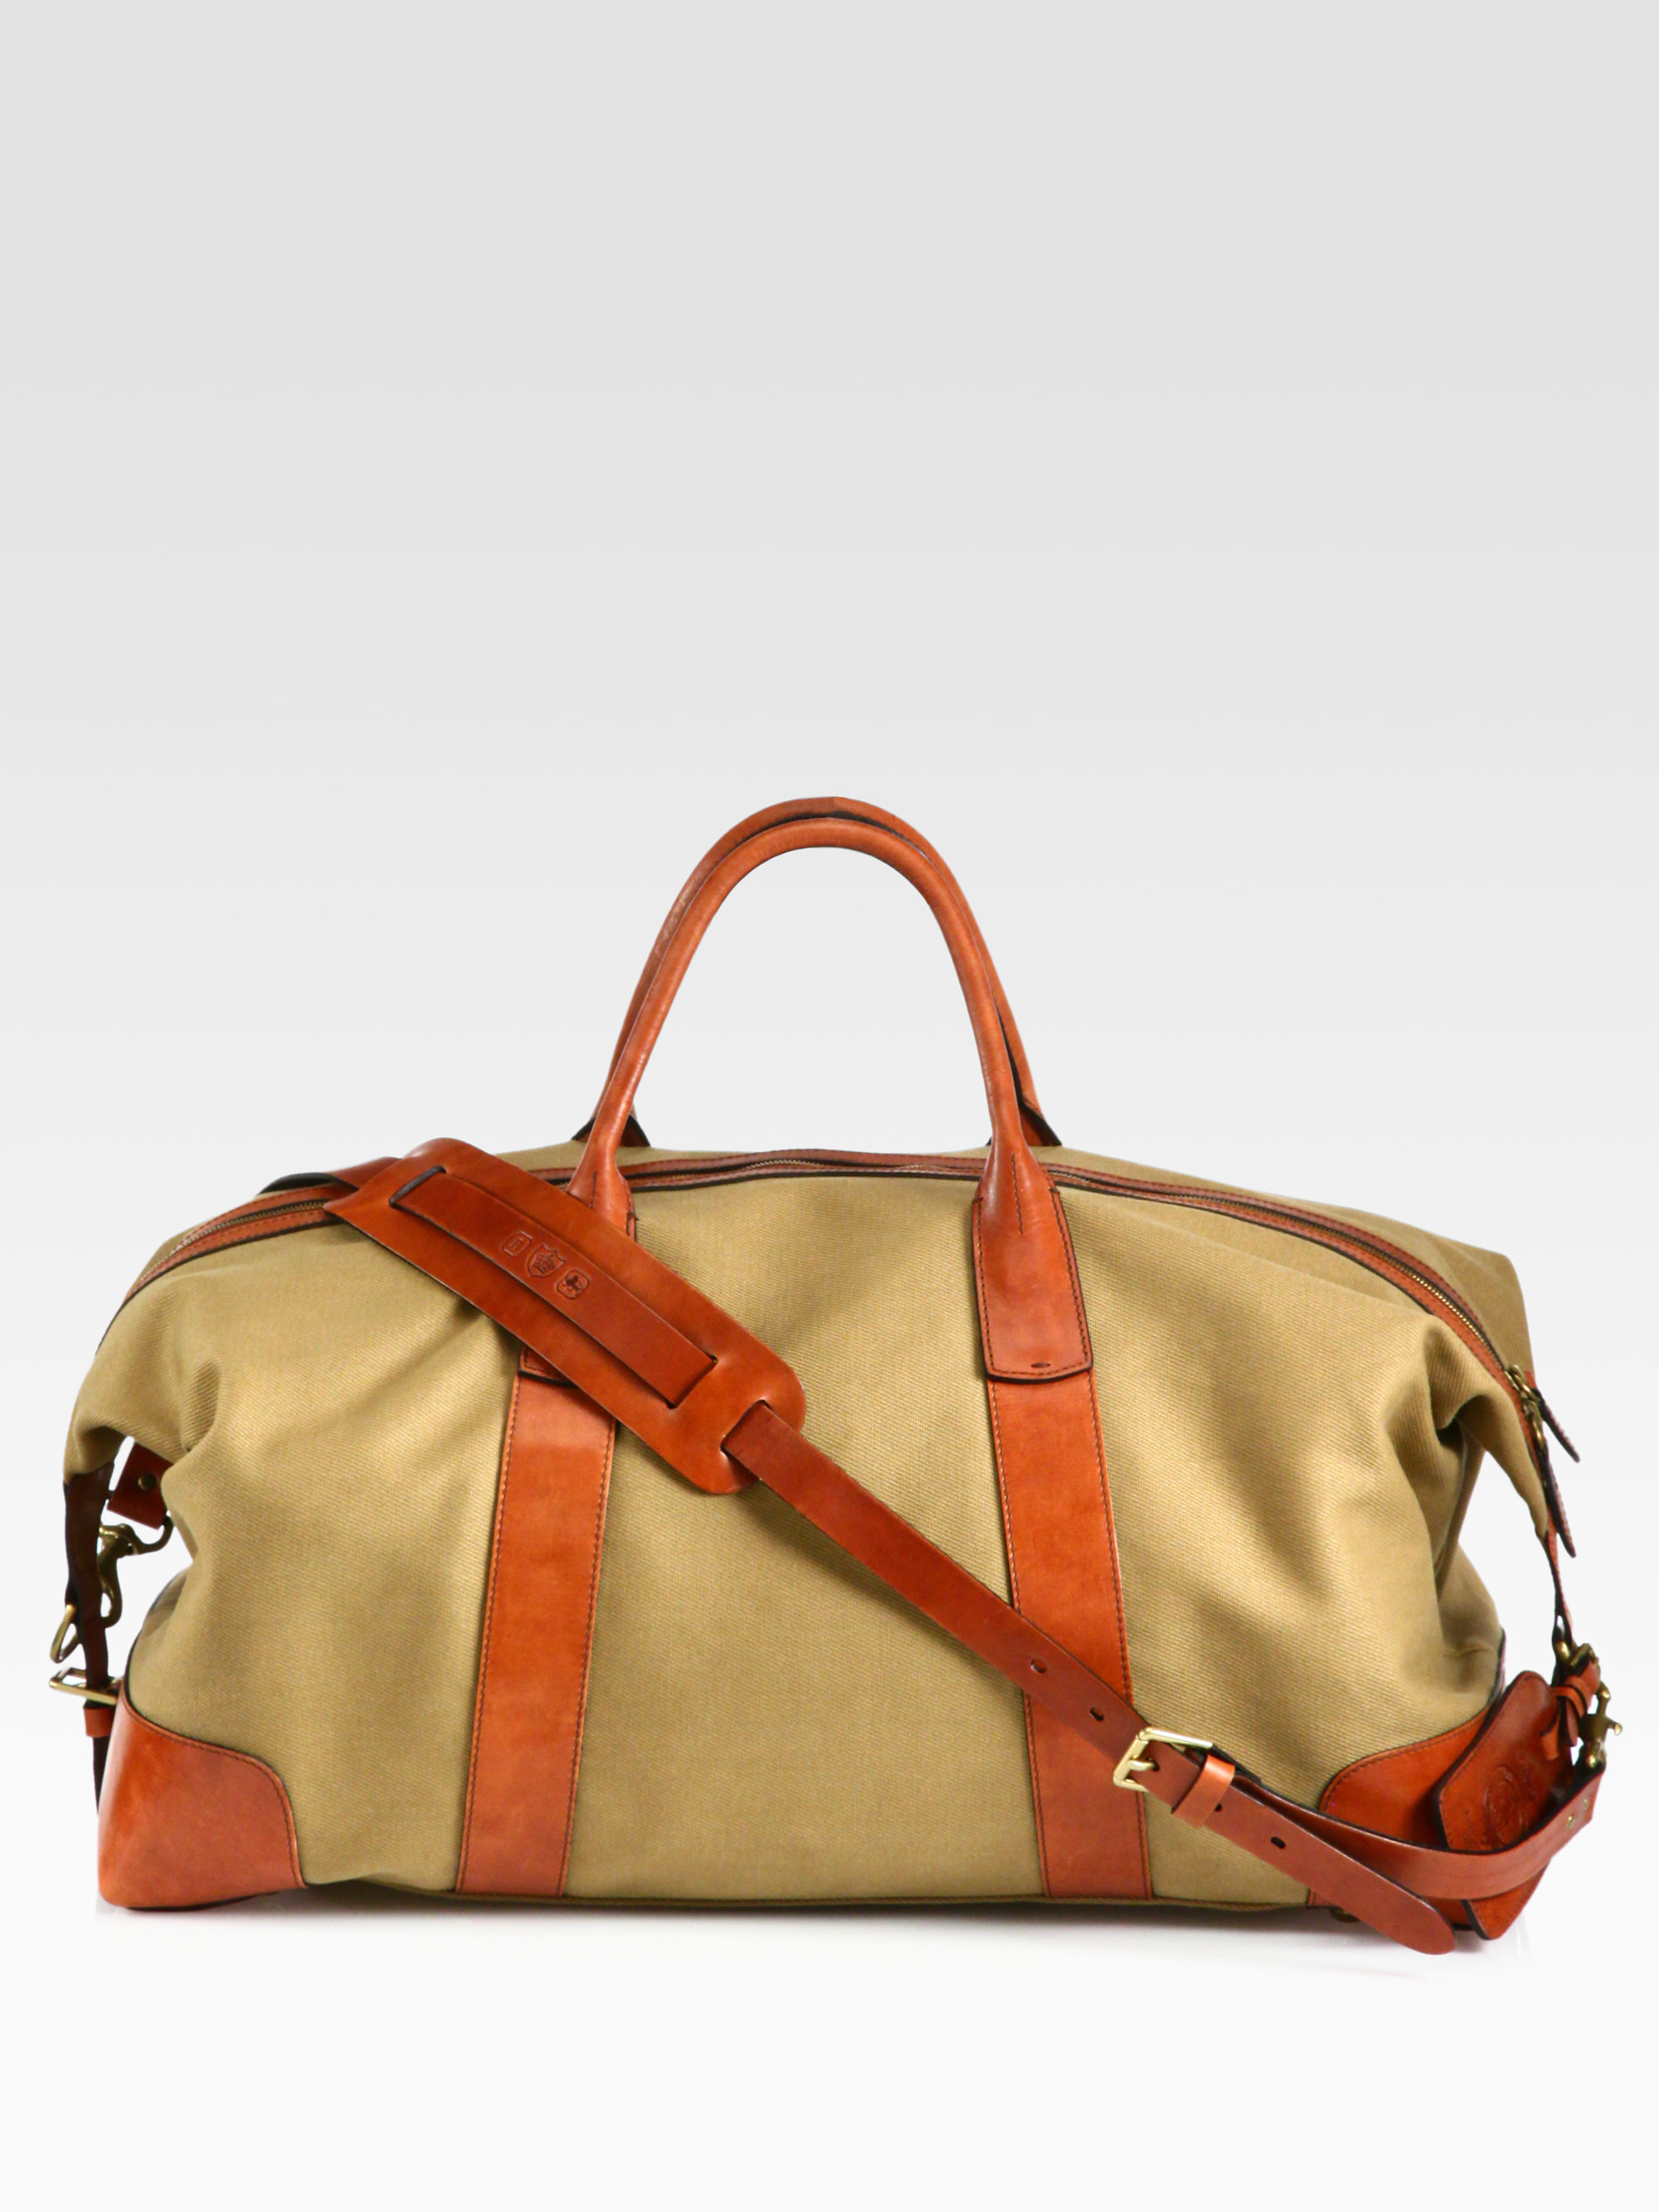 9336f8a604 ... uk lyst polo ralph lauren canvas duffel in natural for men 2c0dc ab37d